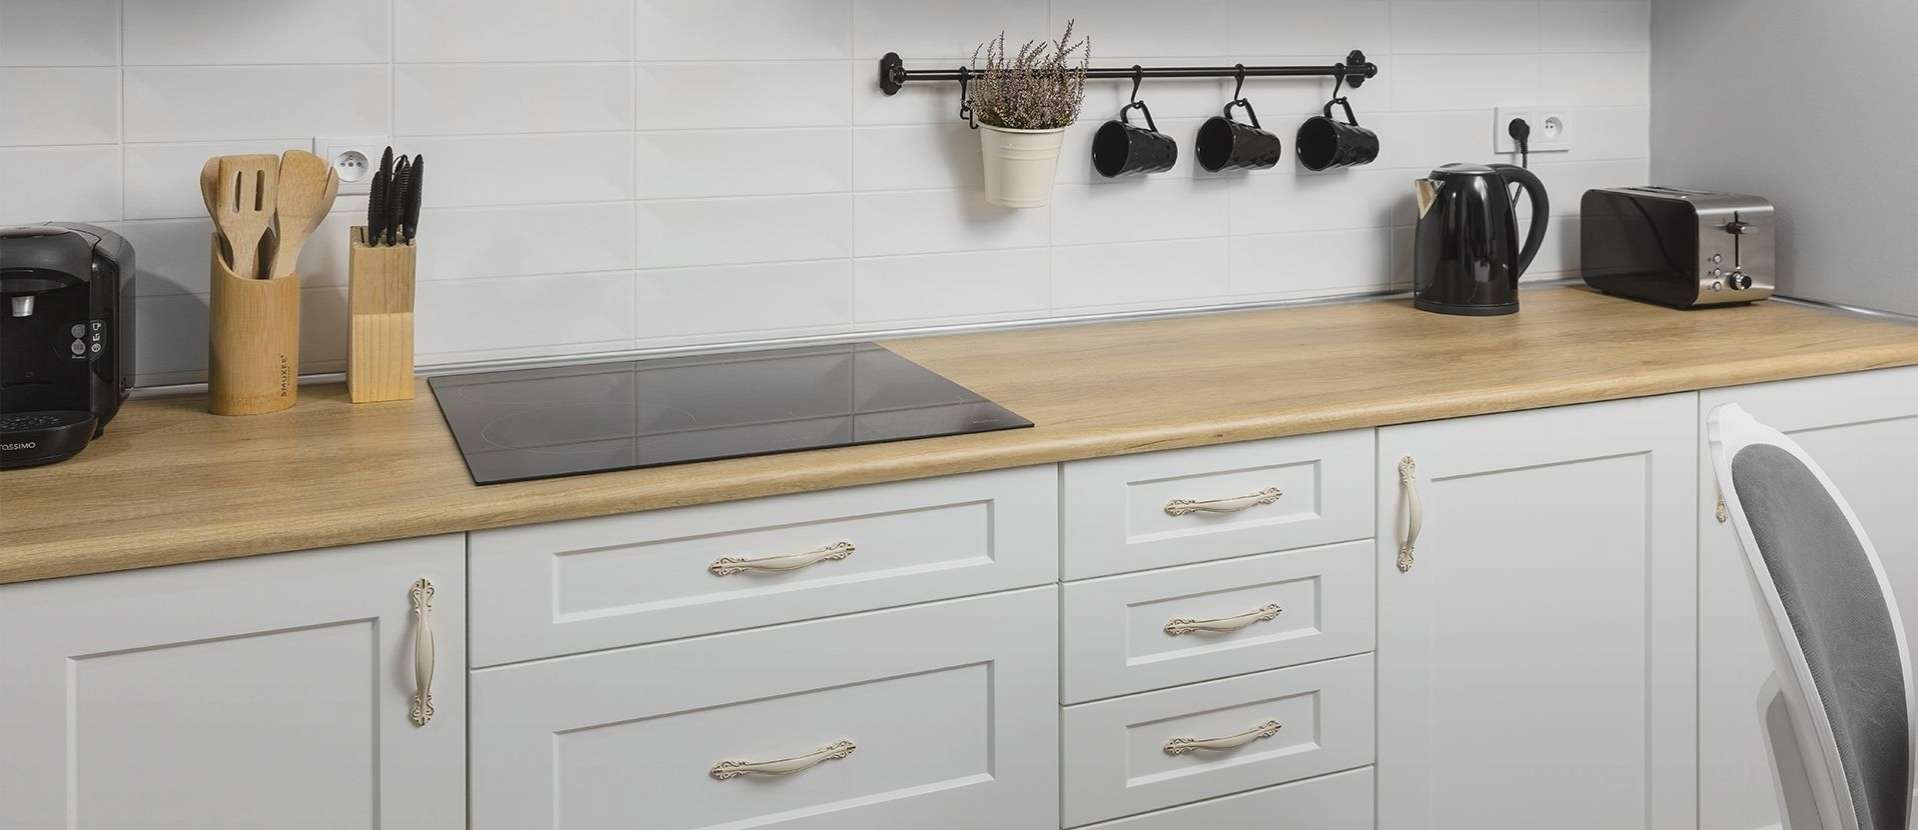 Functionality  in the kitchen